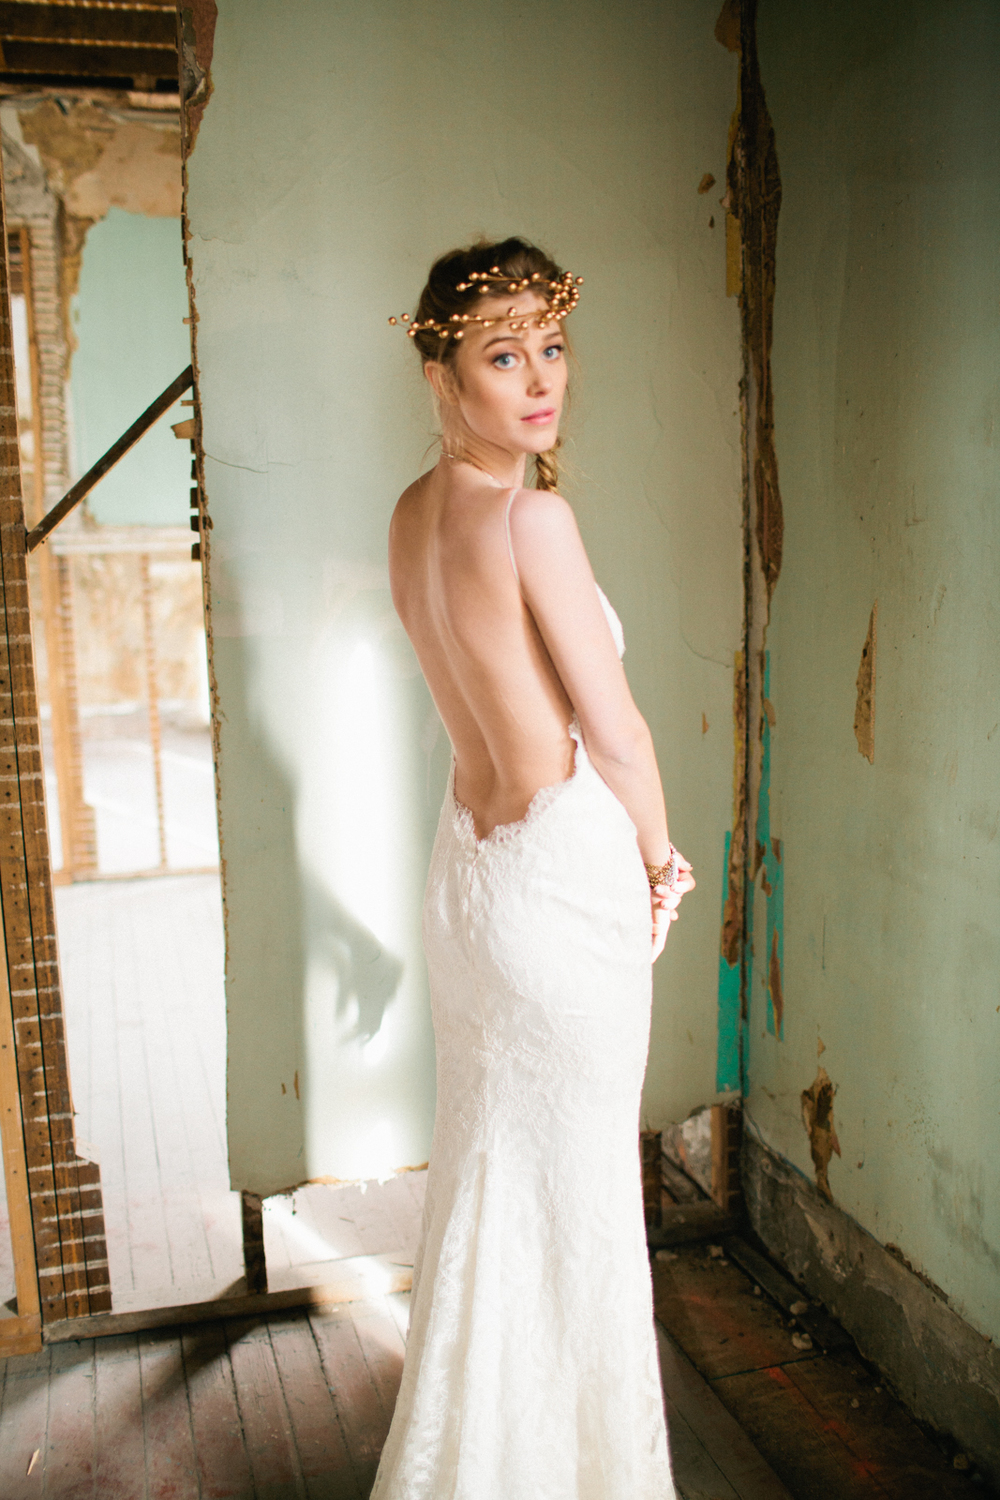 The Katie May 'Princeville' was featured in the a&bé bridal shop stylebook, Spring 2014 Image by Our Love is Loud